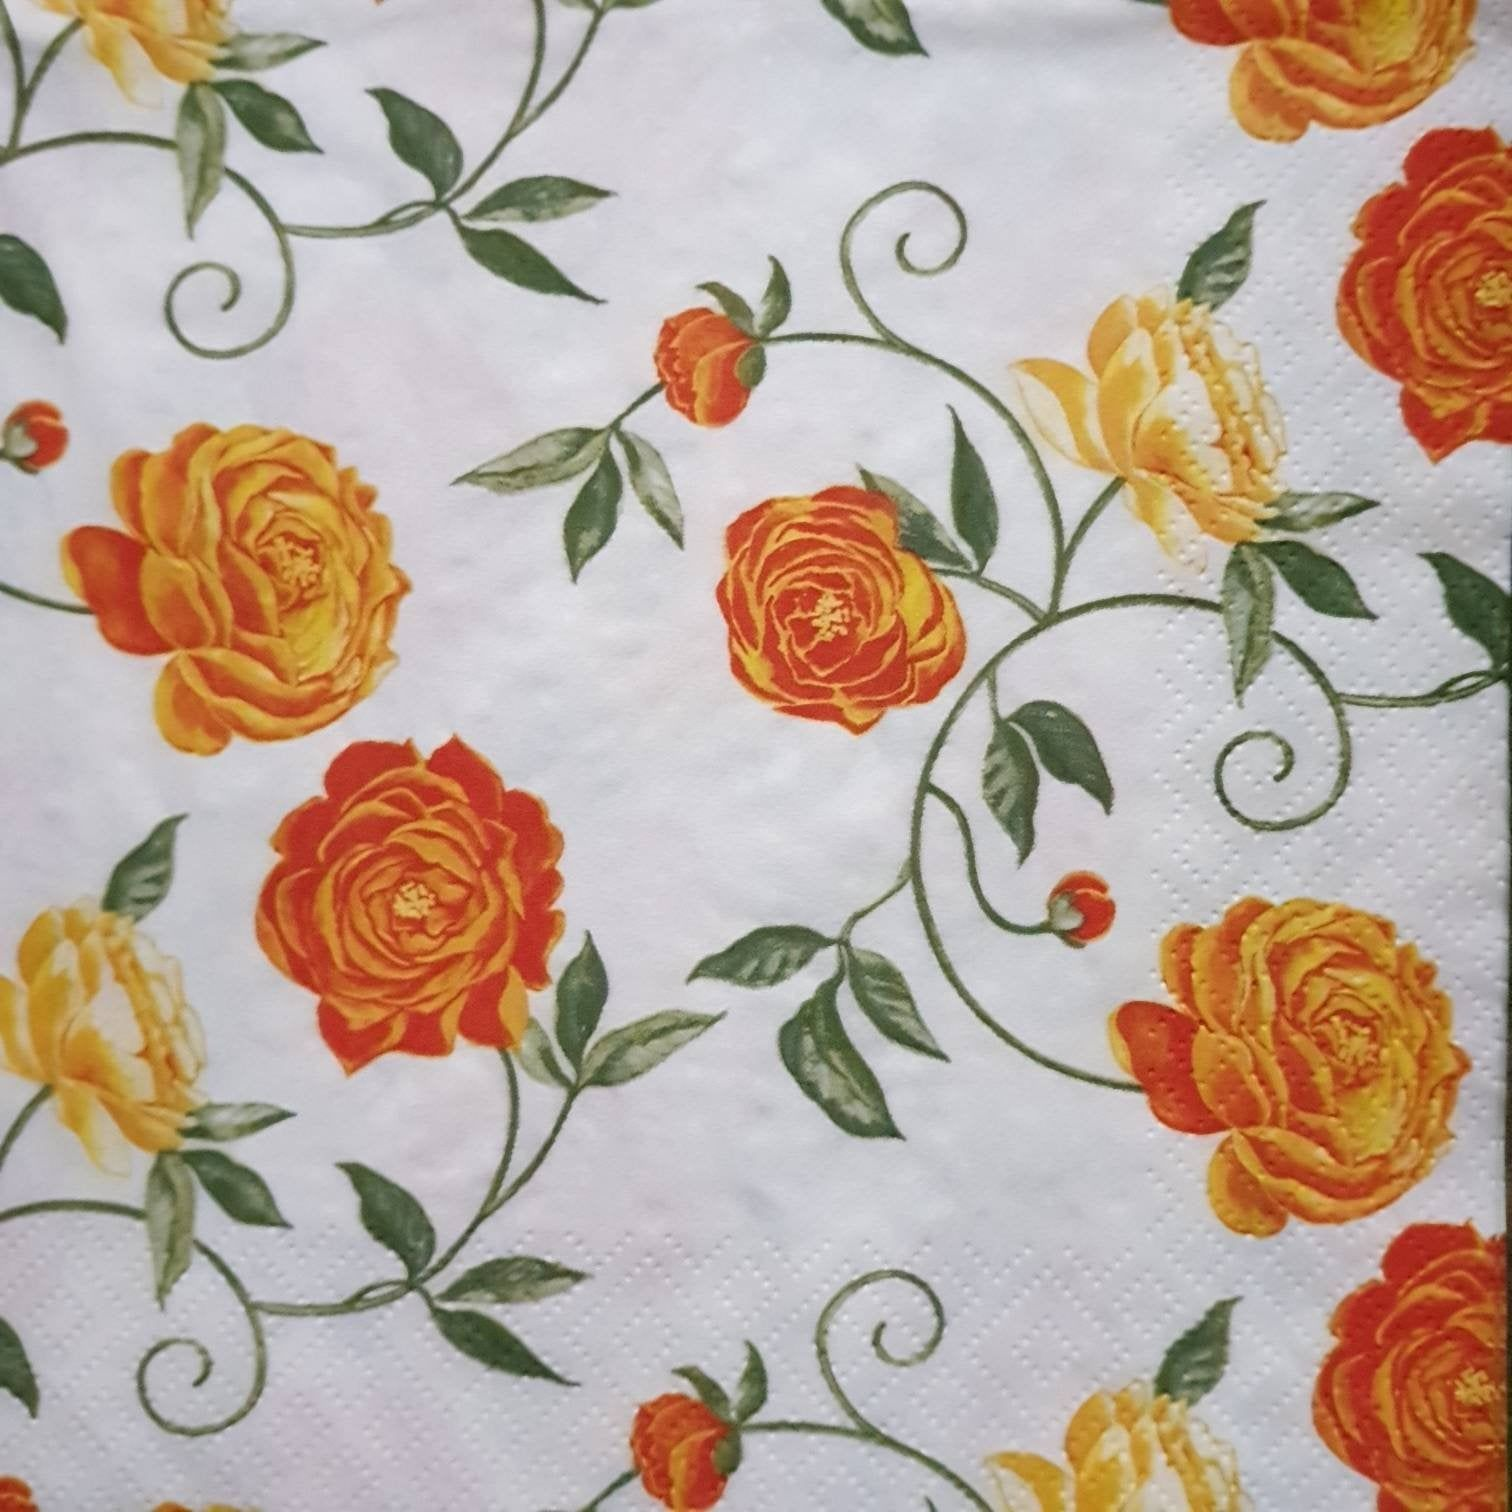 4 Delicate Peony Paper Napkins for Decoupage, Crafts Supply, Flowers Napkins, Decoupage paper, Orange Flowers, Craft Supplies